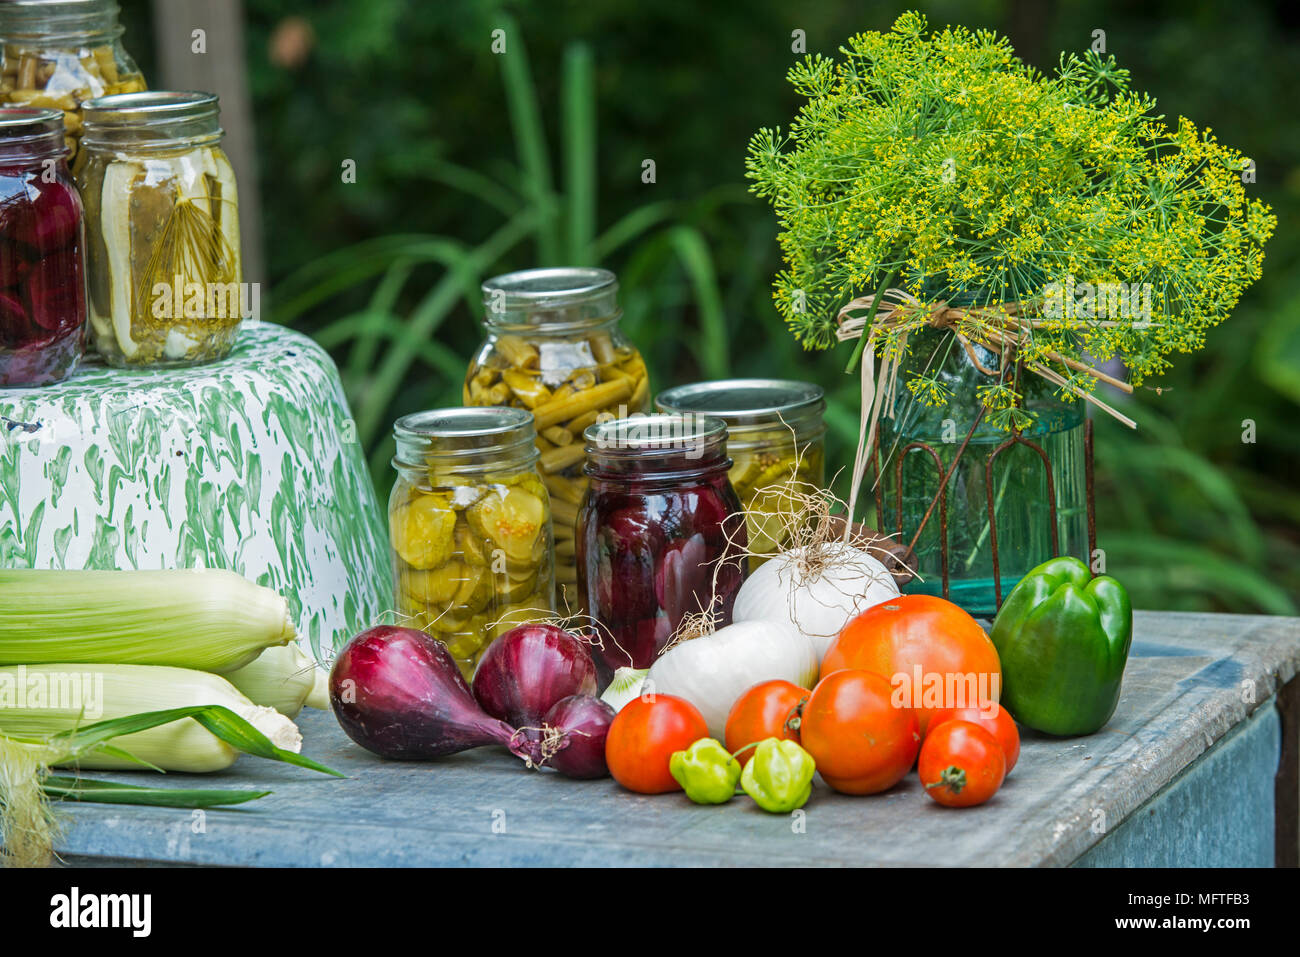 Preserving The Bounty Of Garden Harvest By Canning And Freezing Produce